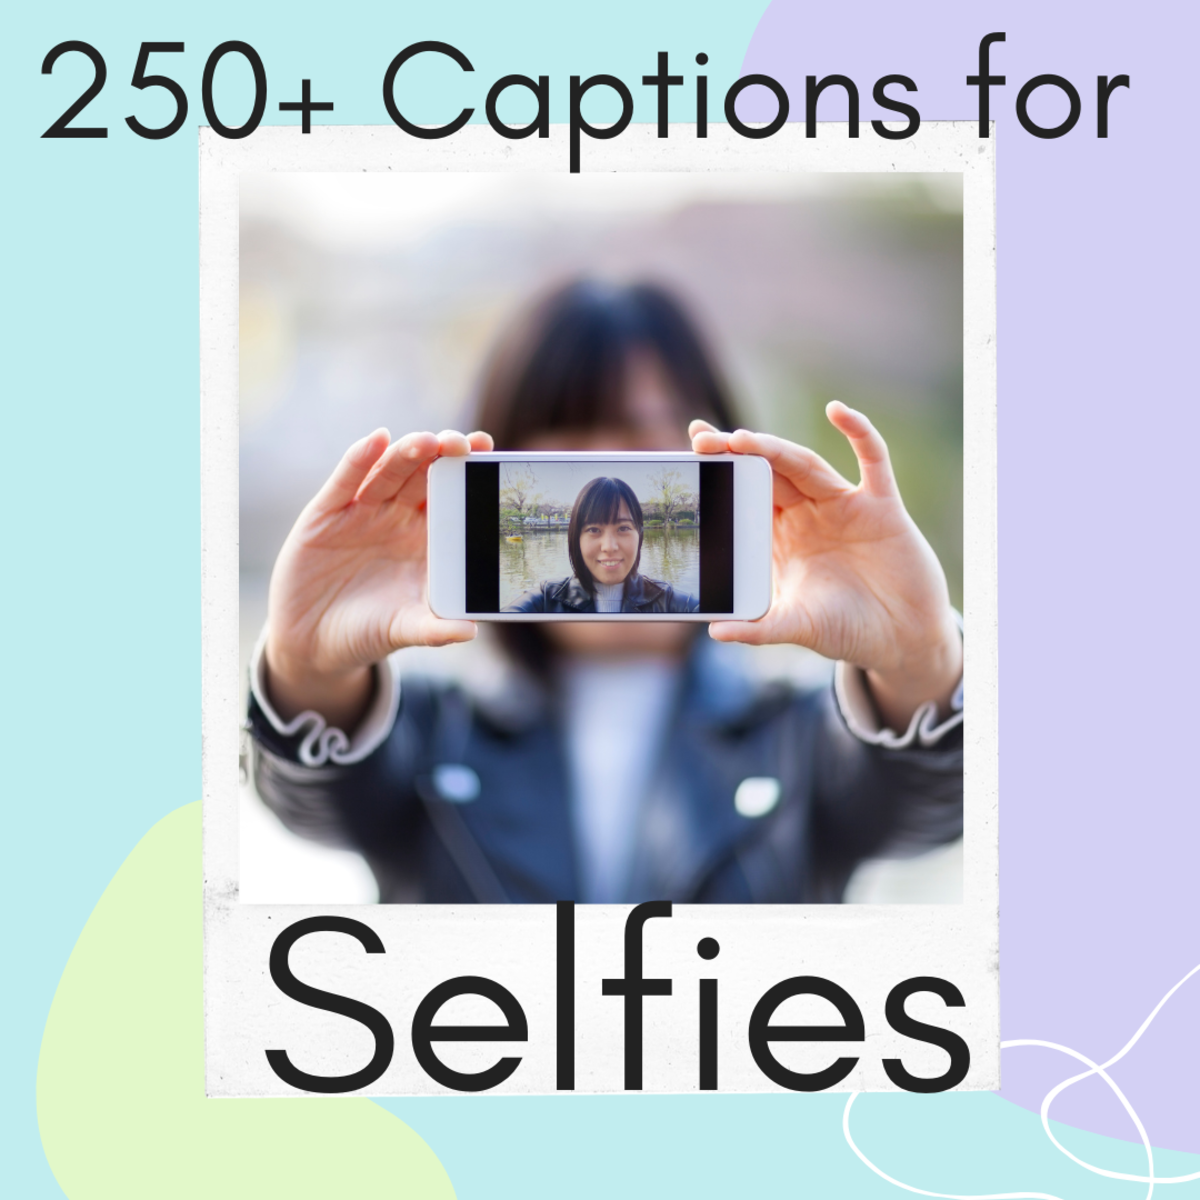 Find just the right caption for your selfie.